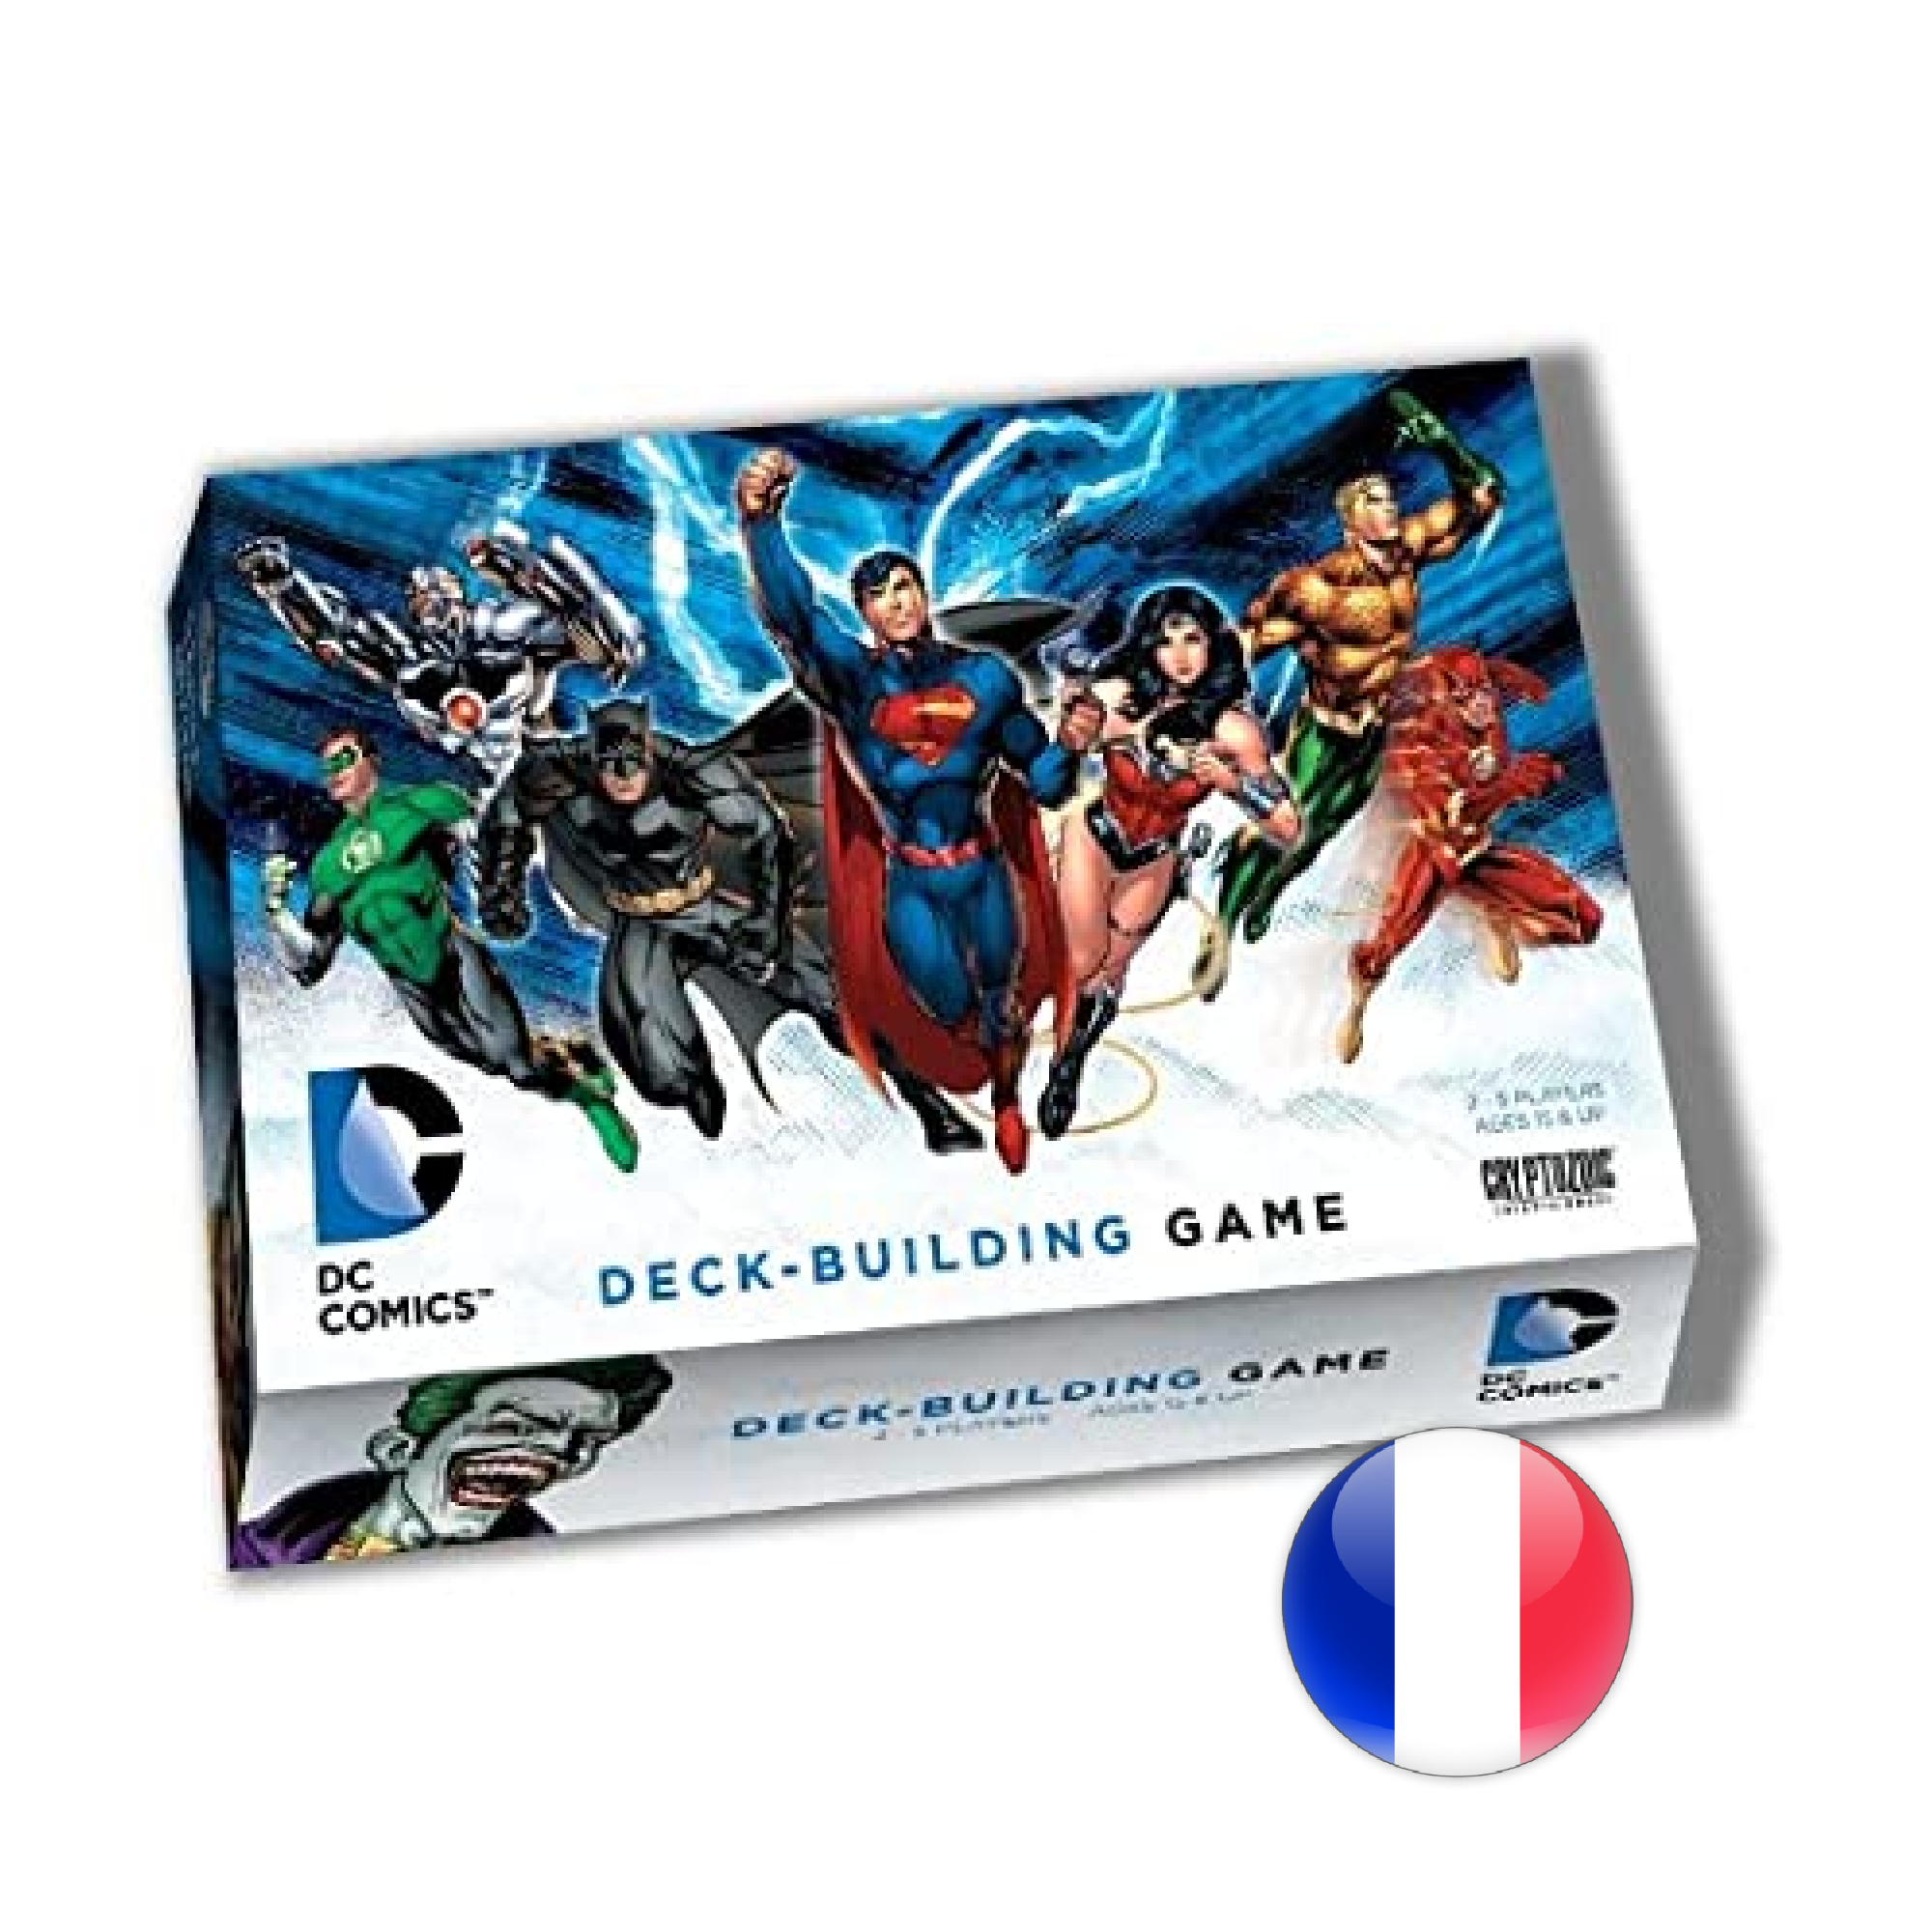 Don't Panic Games DC Comics Deck Building Game VF